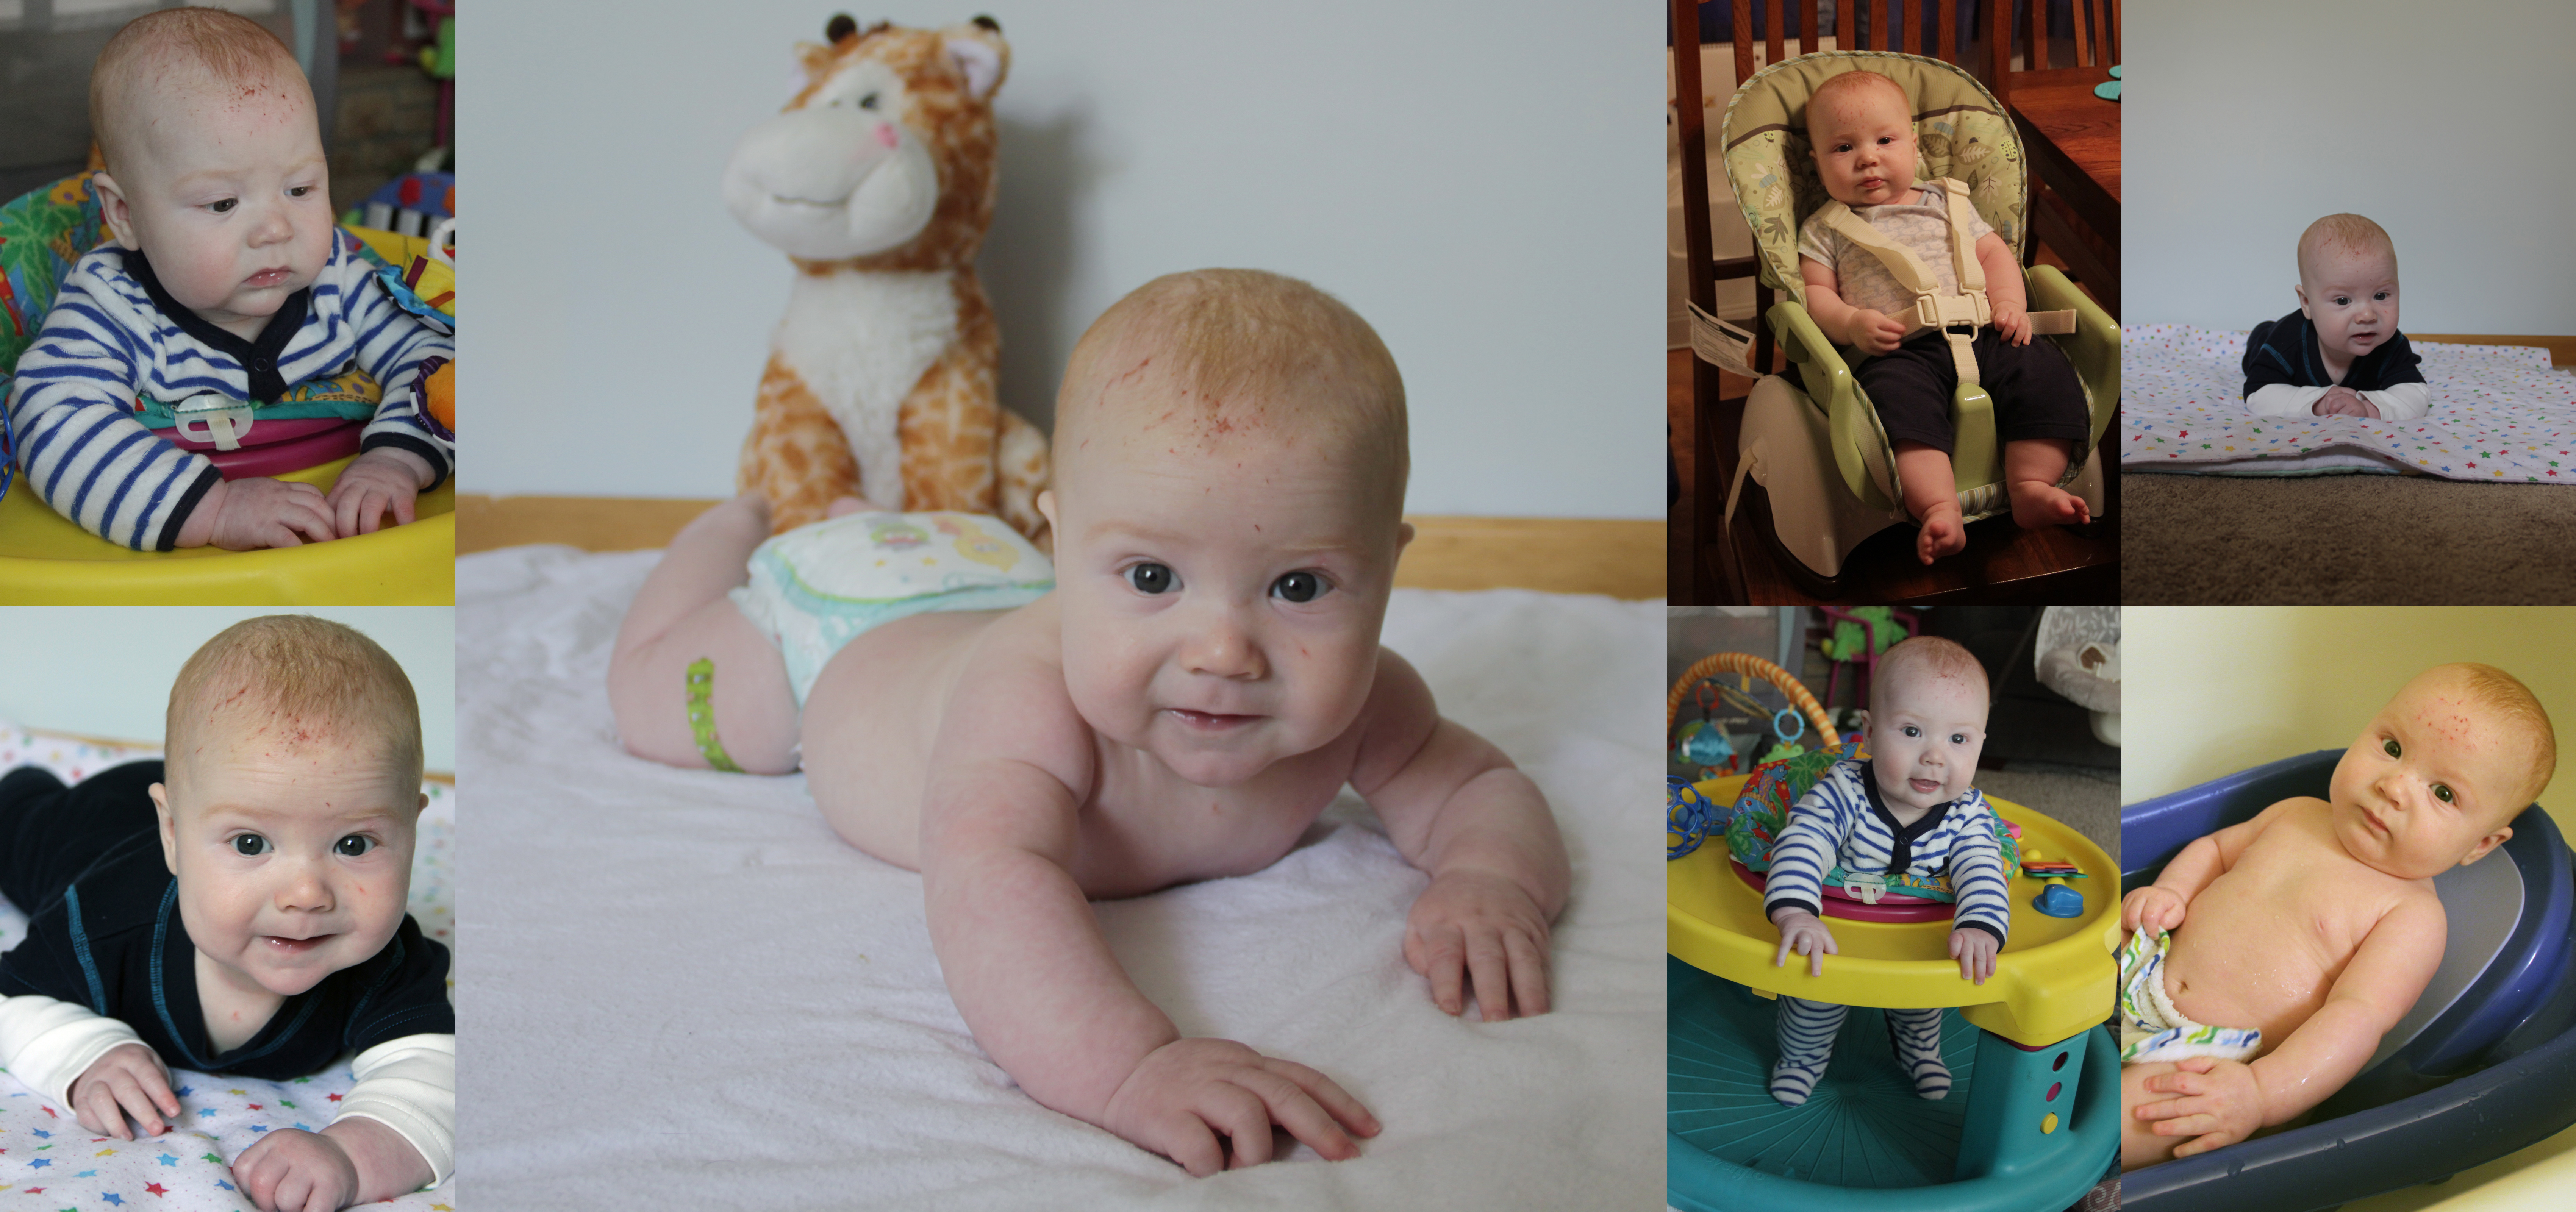 Ryder-4months-collage